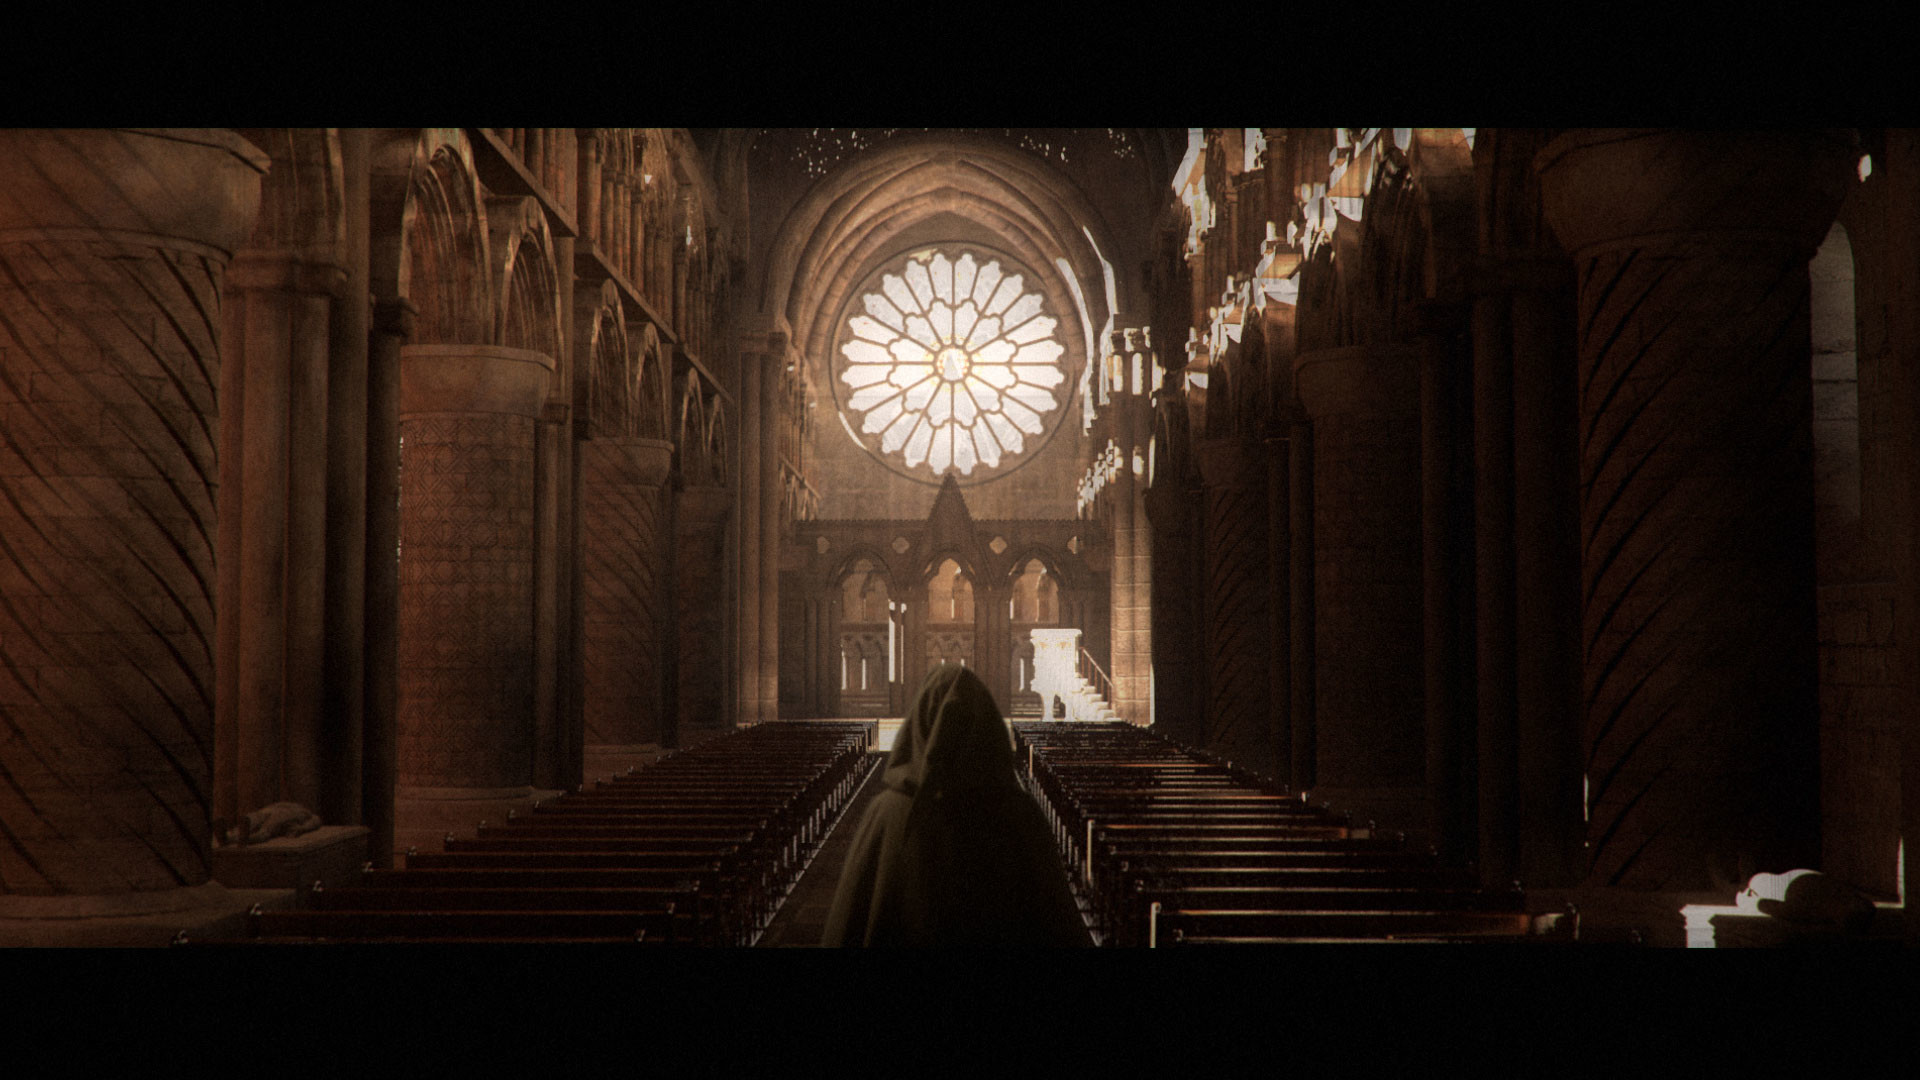 Durham Cathedral Interior - done for FXPHD course years back